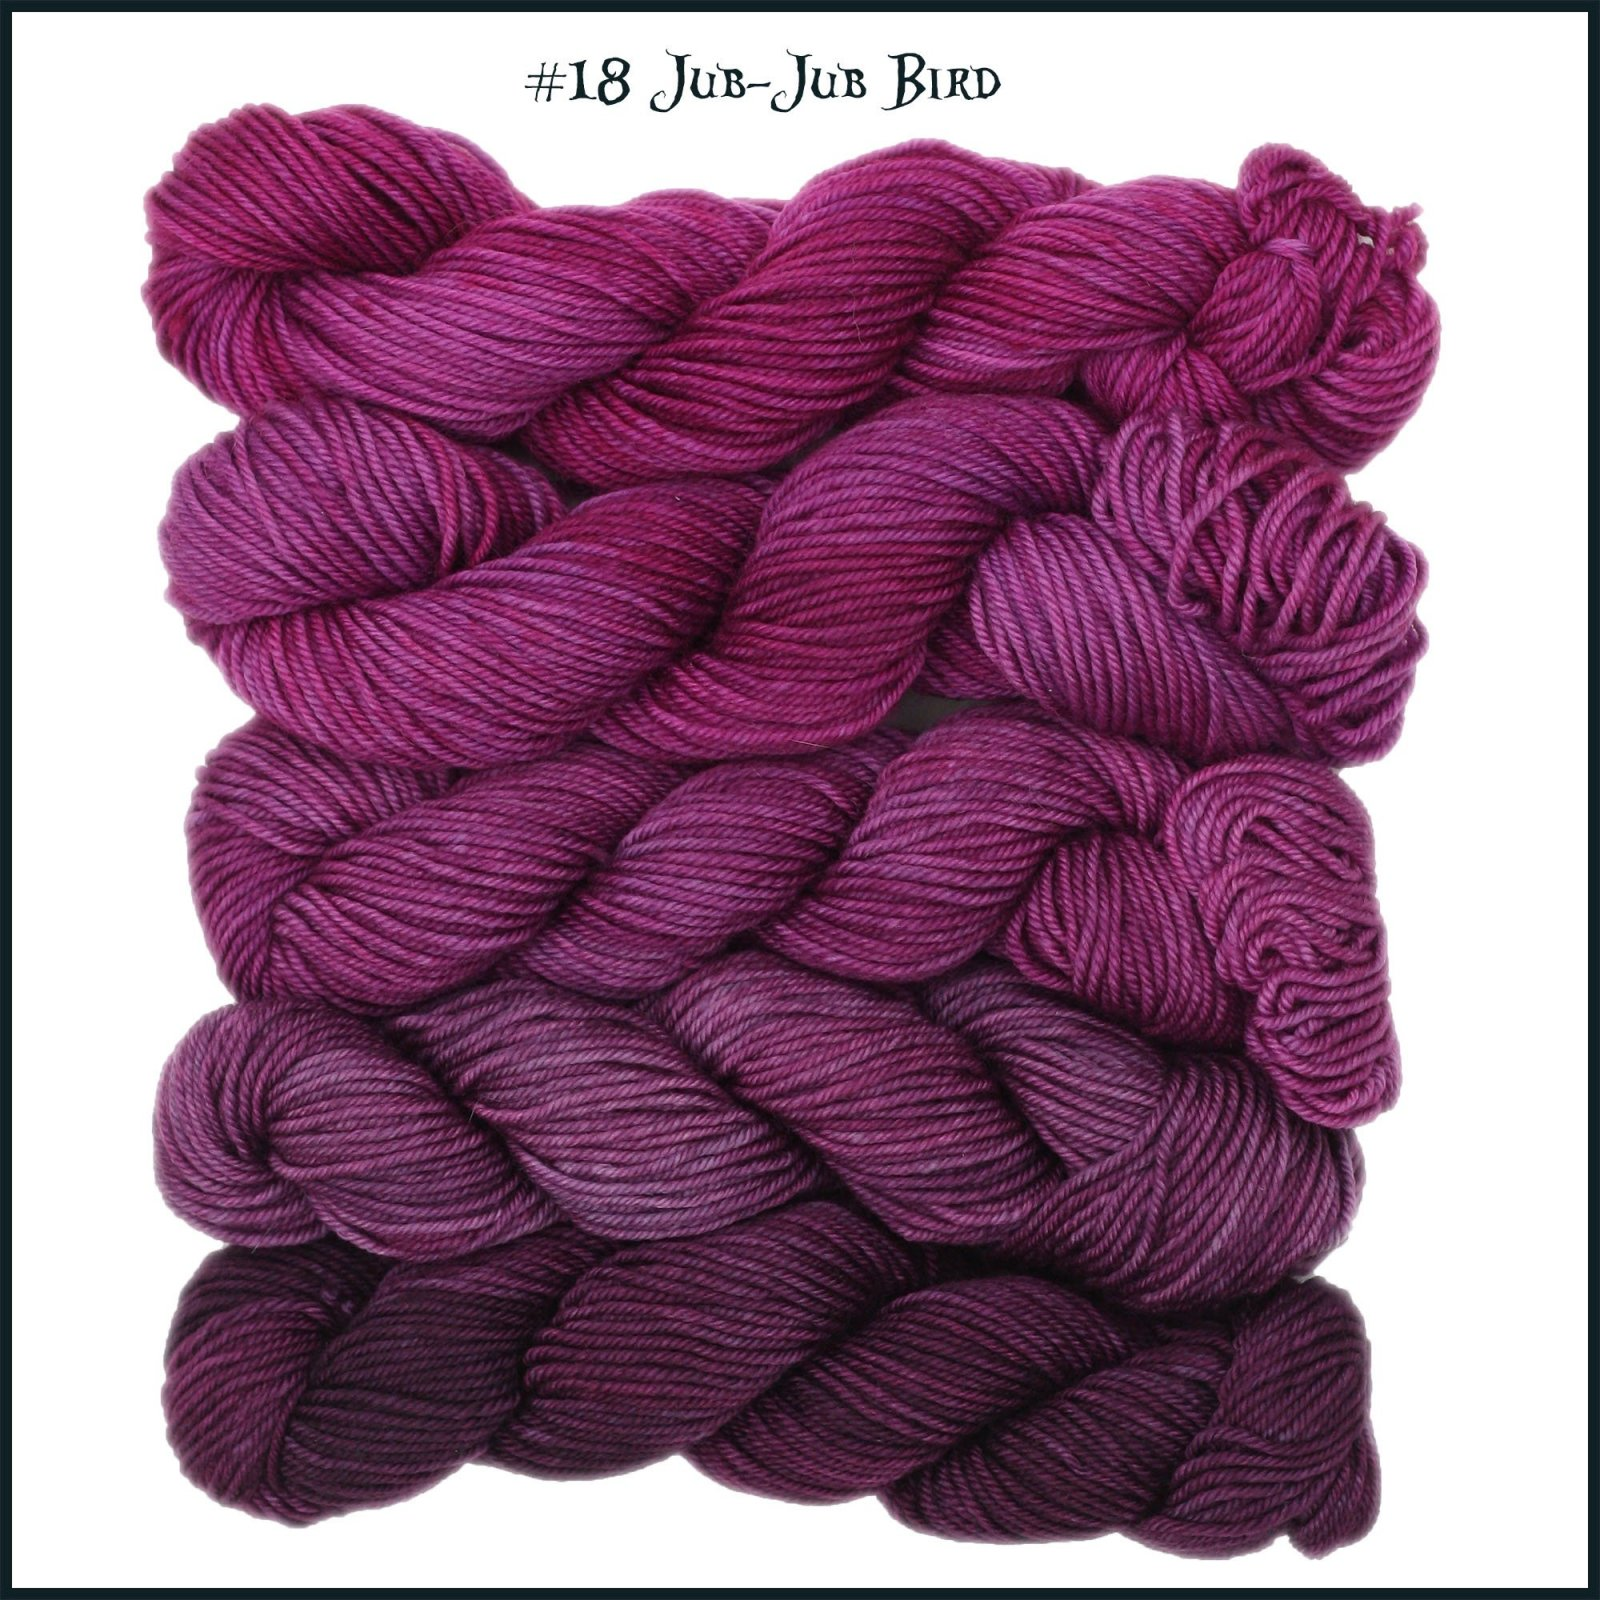 Mad Hatter Jub-Jub Bird Down the Rabbit Hole Gradient Mini Skein Pack